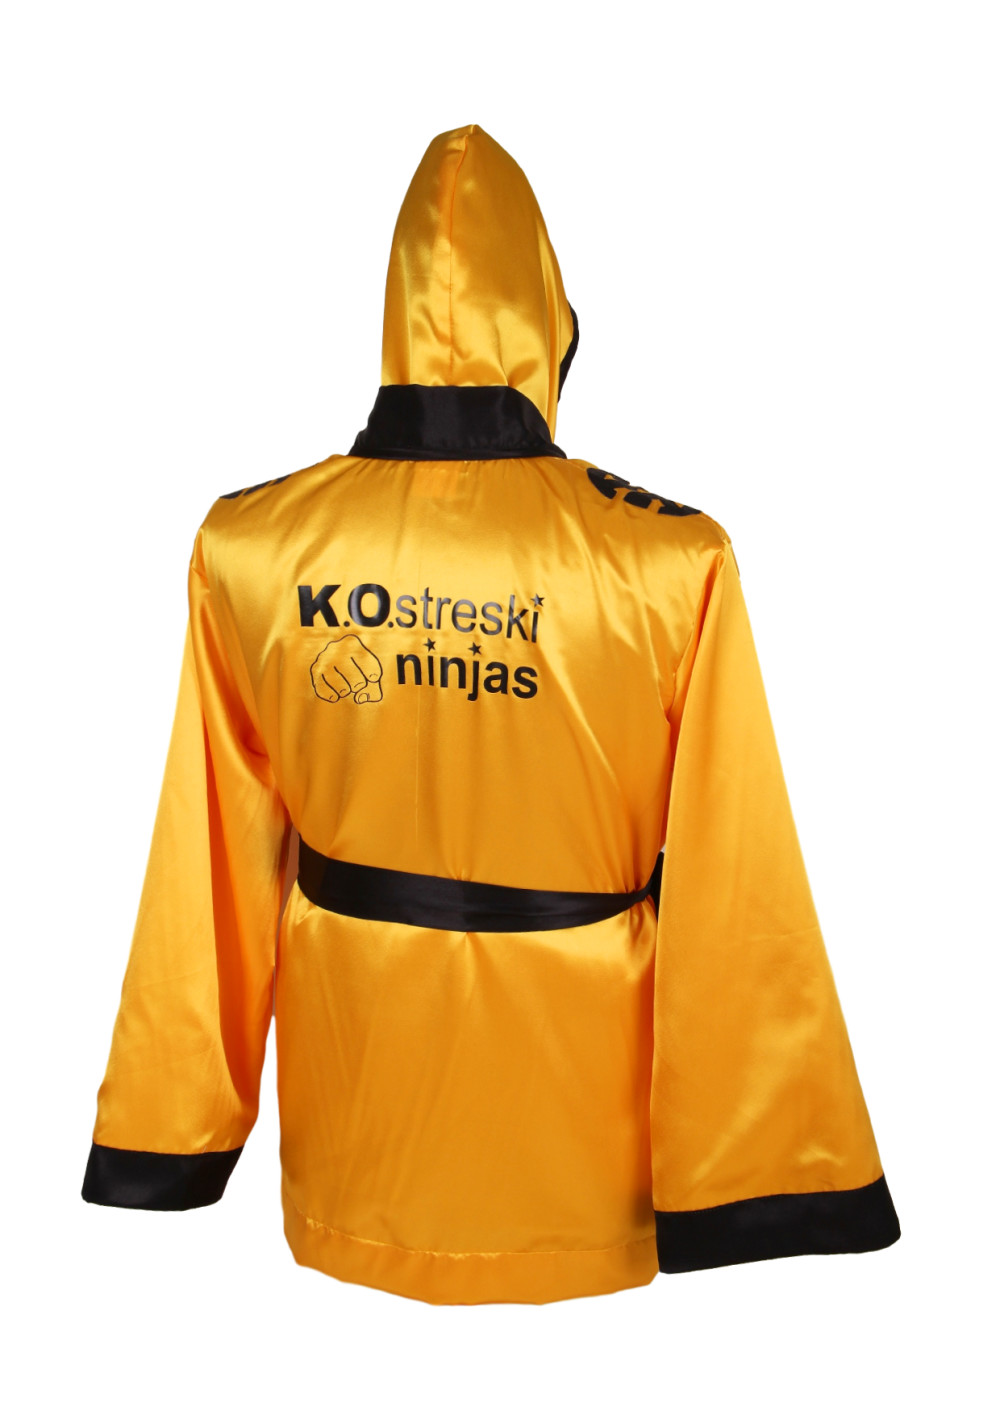 American Ninja Vegal Final Blog Boxxerworld Jaket Roxxer Nick Is Now Planning On Ordering A New Boxing Robe For The Season Of In Creed Style